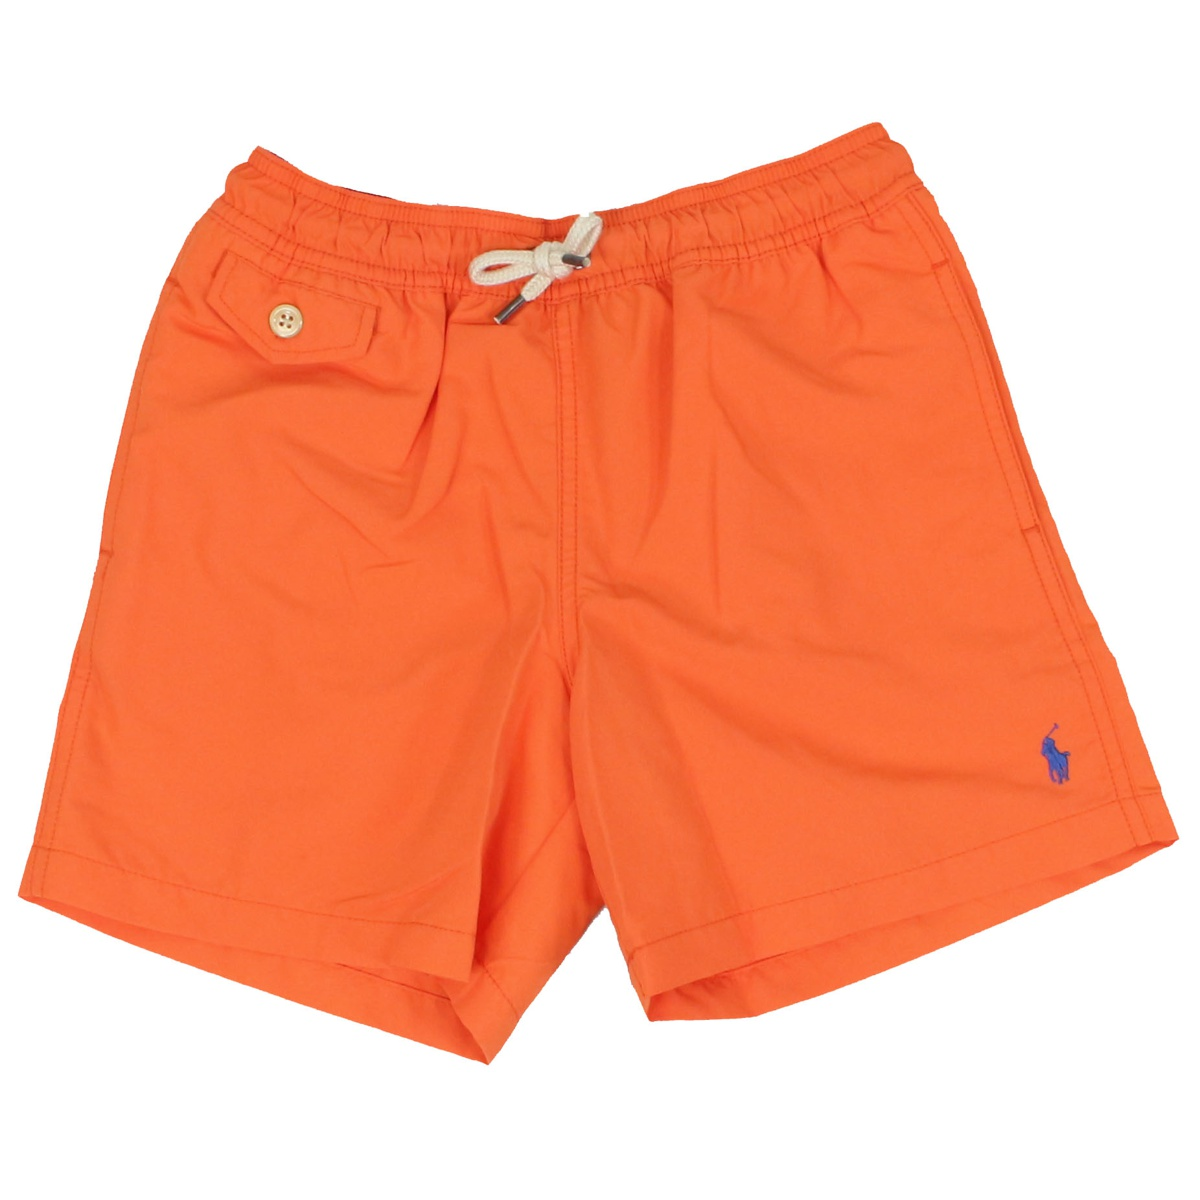 Boxer with logo embroidery Orange Polo Ralph Lauren